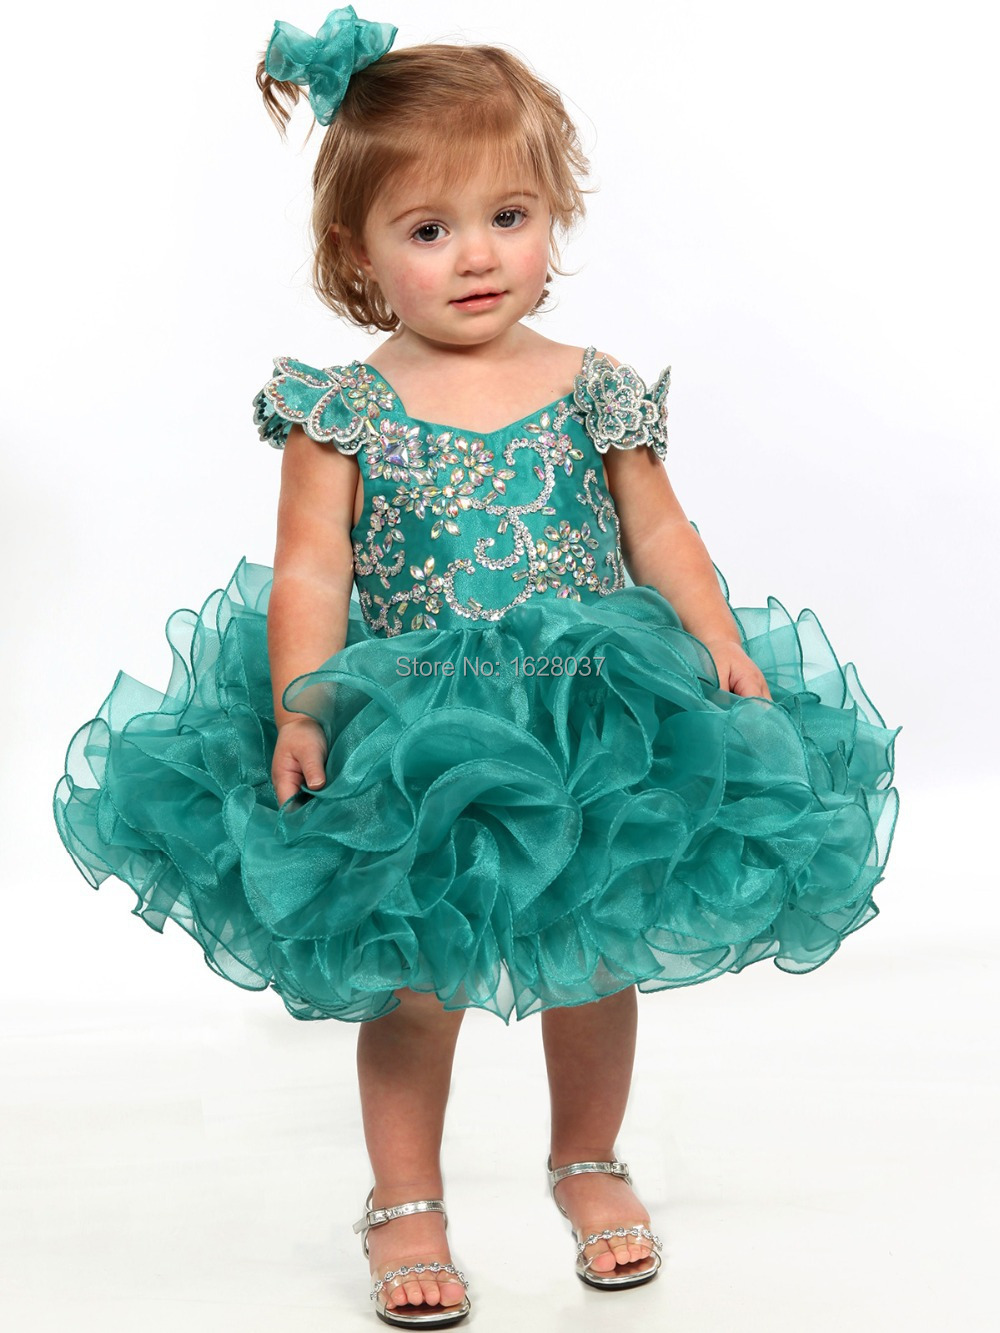 Colorful Party Dresses Toddler Sketch - All Wedding Dresses ...